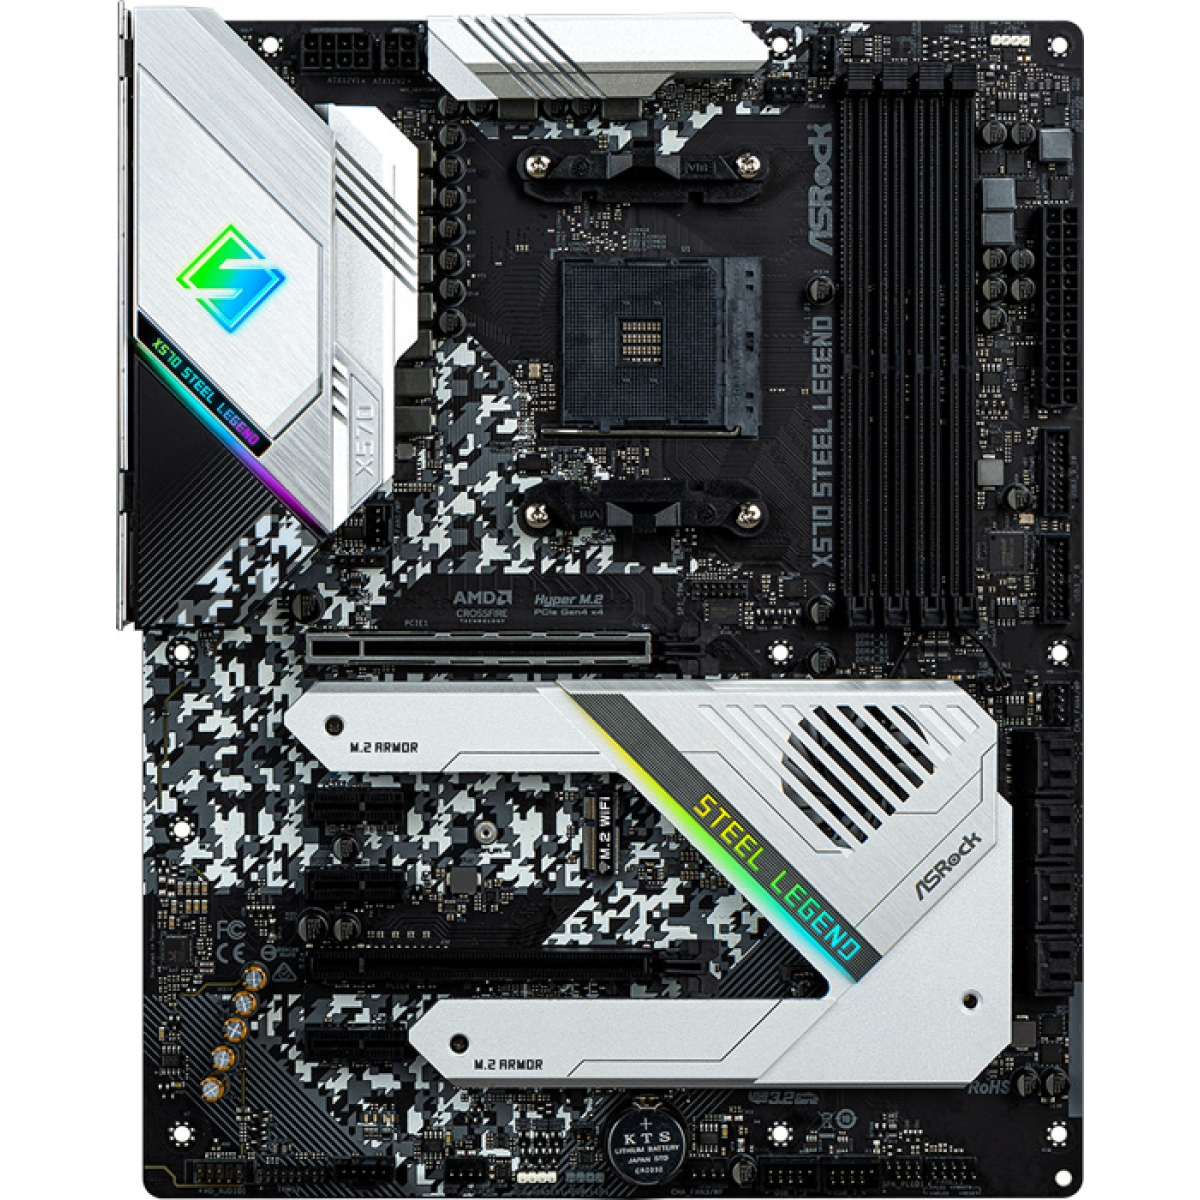 TERABYTE MOTHERBOARD DRIVER WINDOWS 7 (2019)